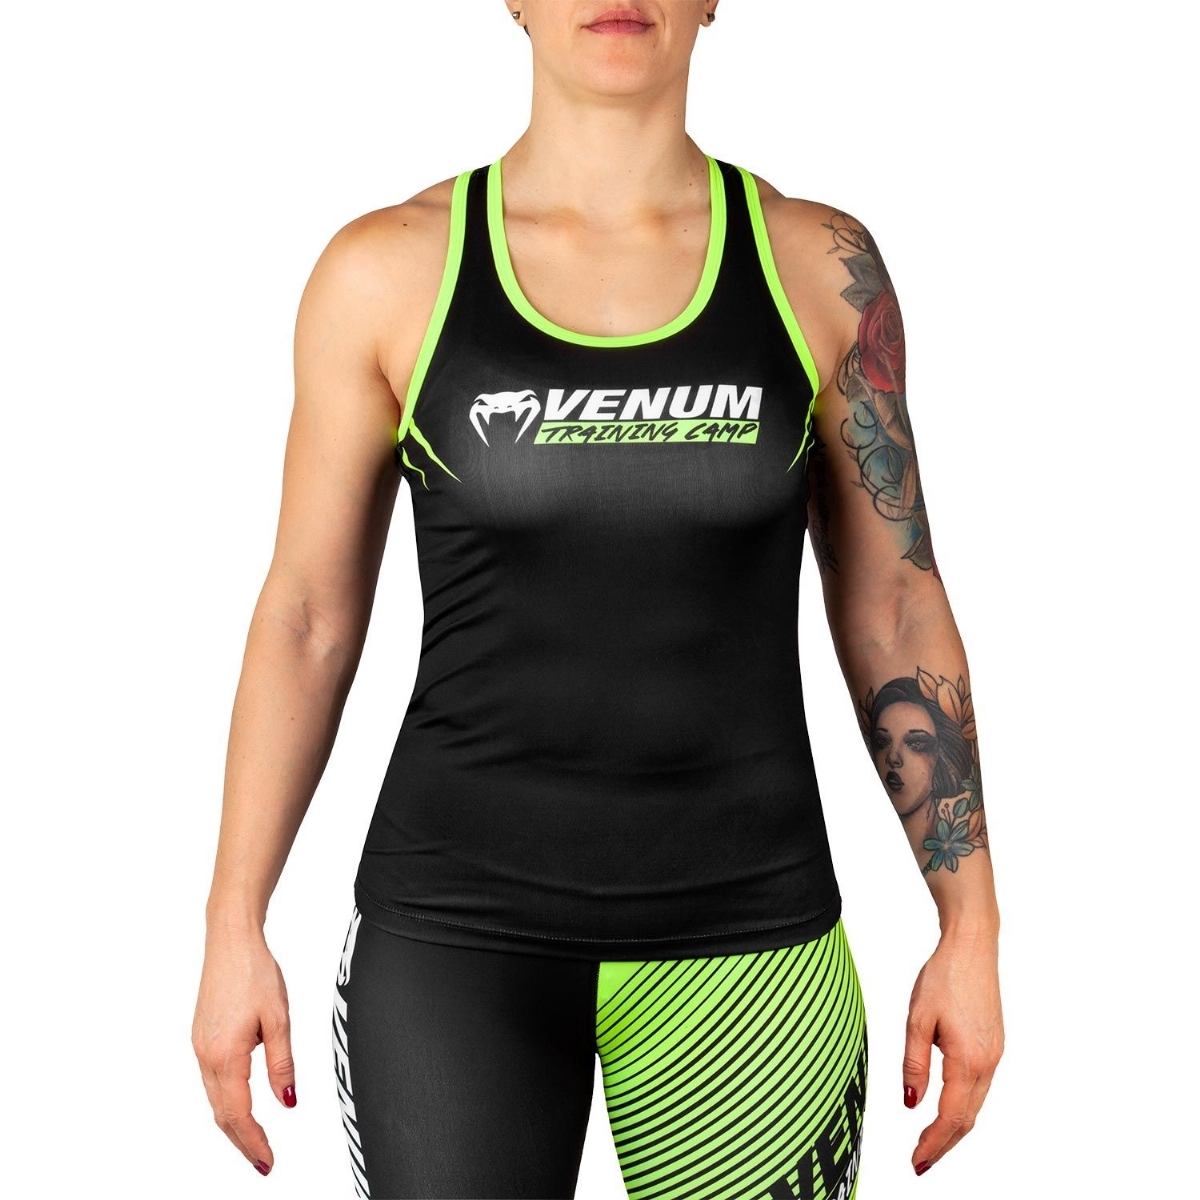 5e804cfe01aab Venum Venum Training Camp 2.0 Tank Top - Black Neo Yellow - For ...